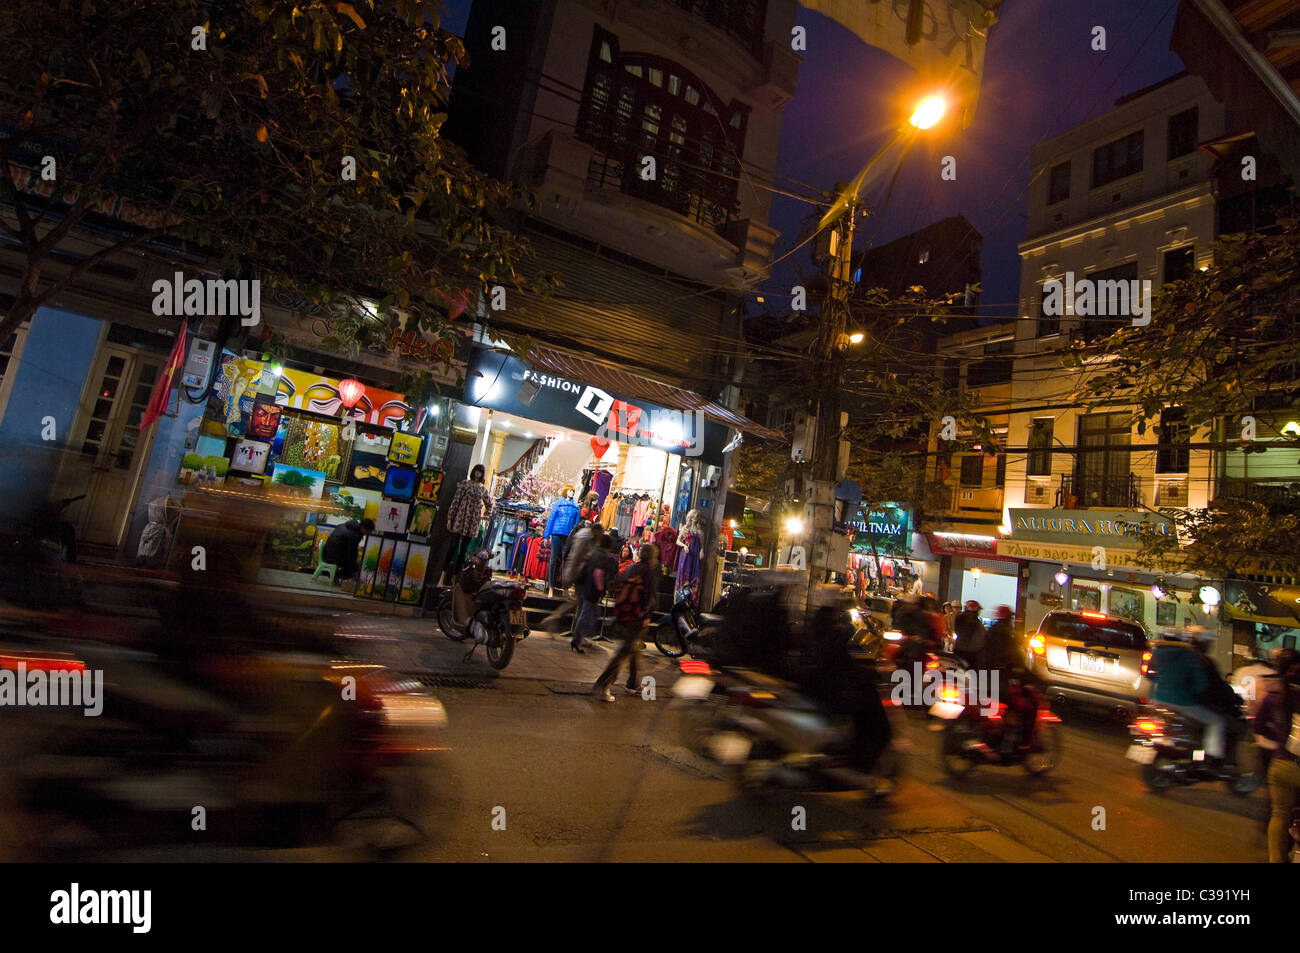 Horizontal wide angle of shops and mopeds, a typical streetscene of the Old Quarter lit up at night, in central - Stock Image